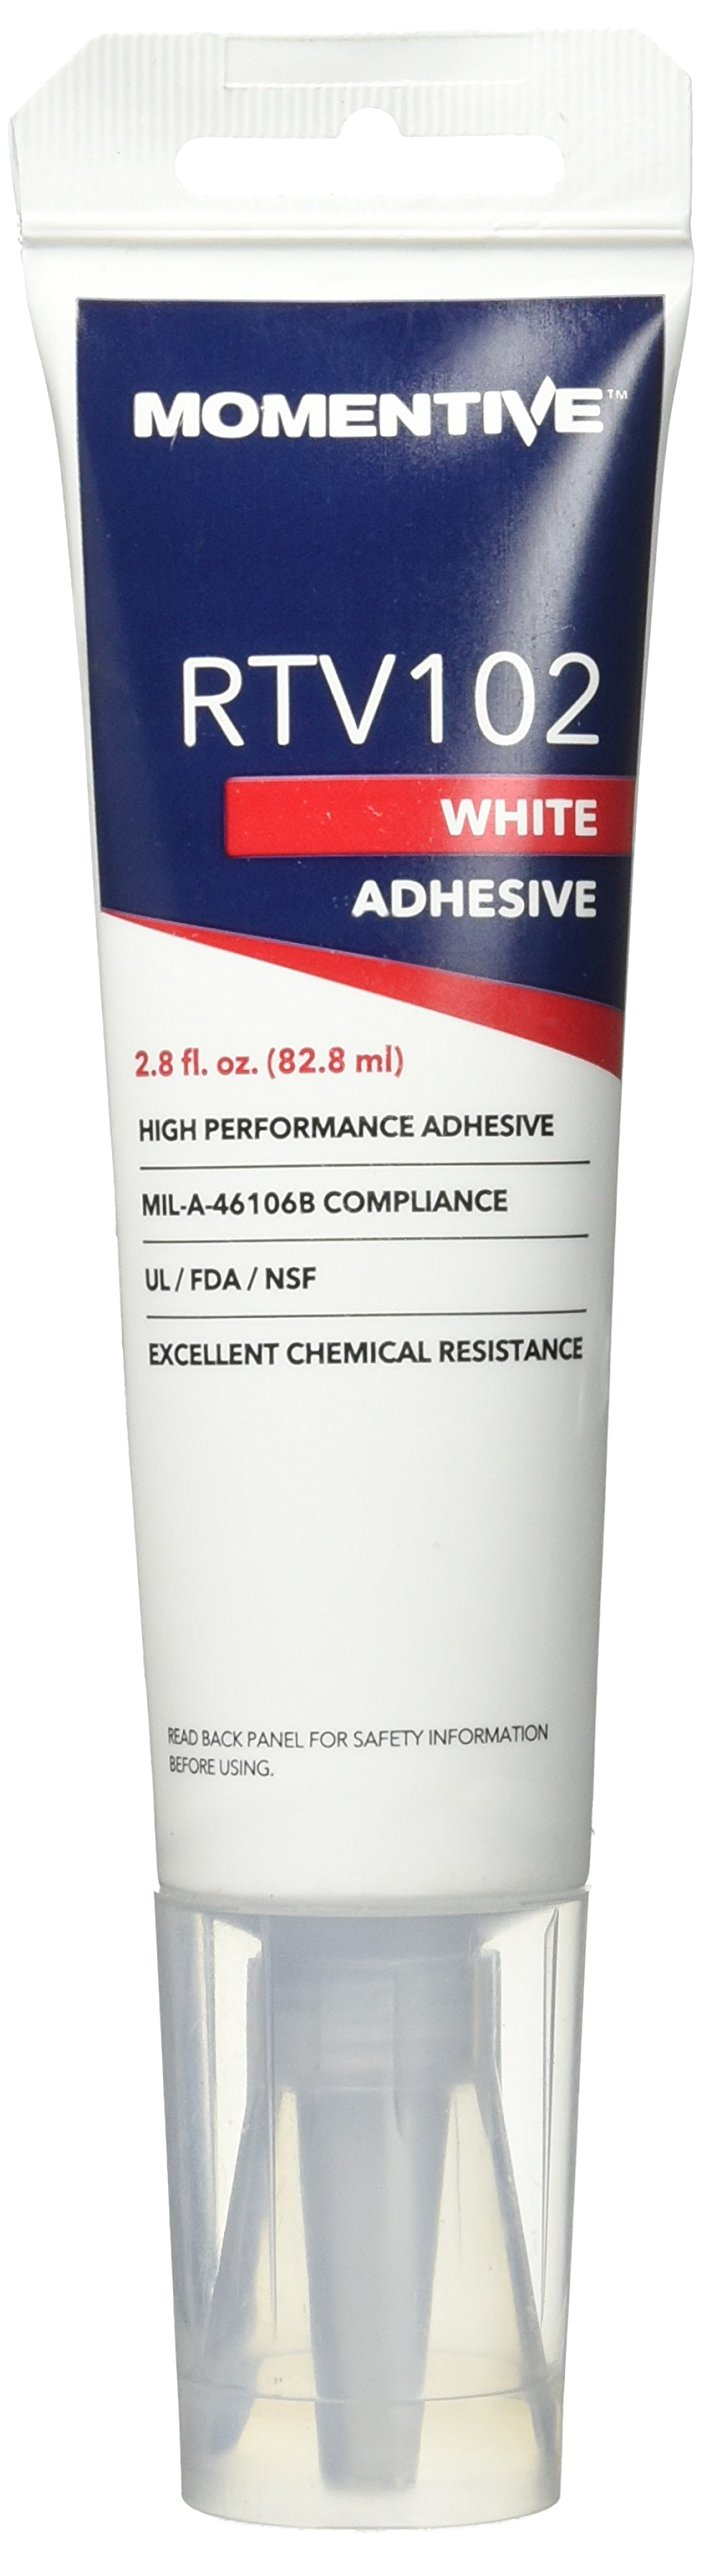 Momentive RTV102 One Part Silicone Sealant, 2.8 Ounce Tube, White by Momentive